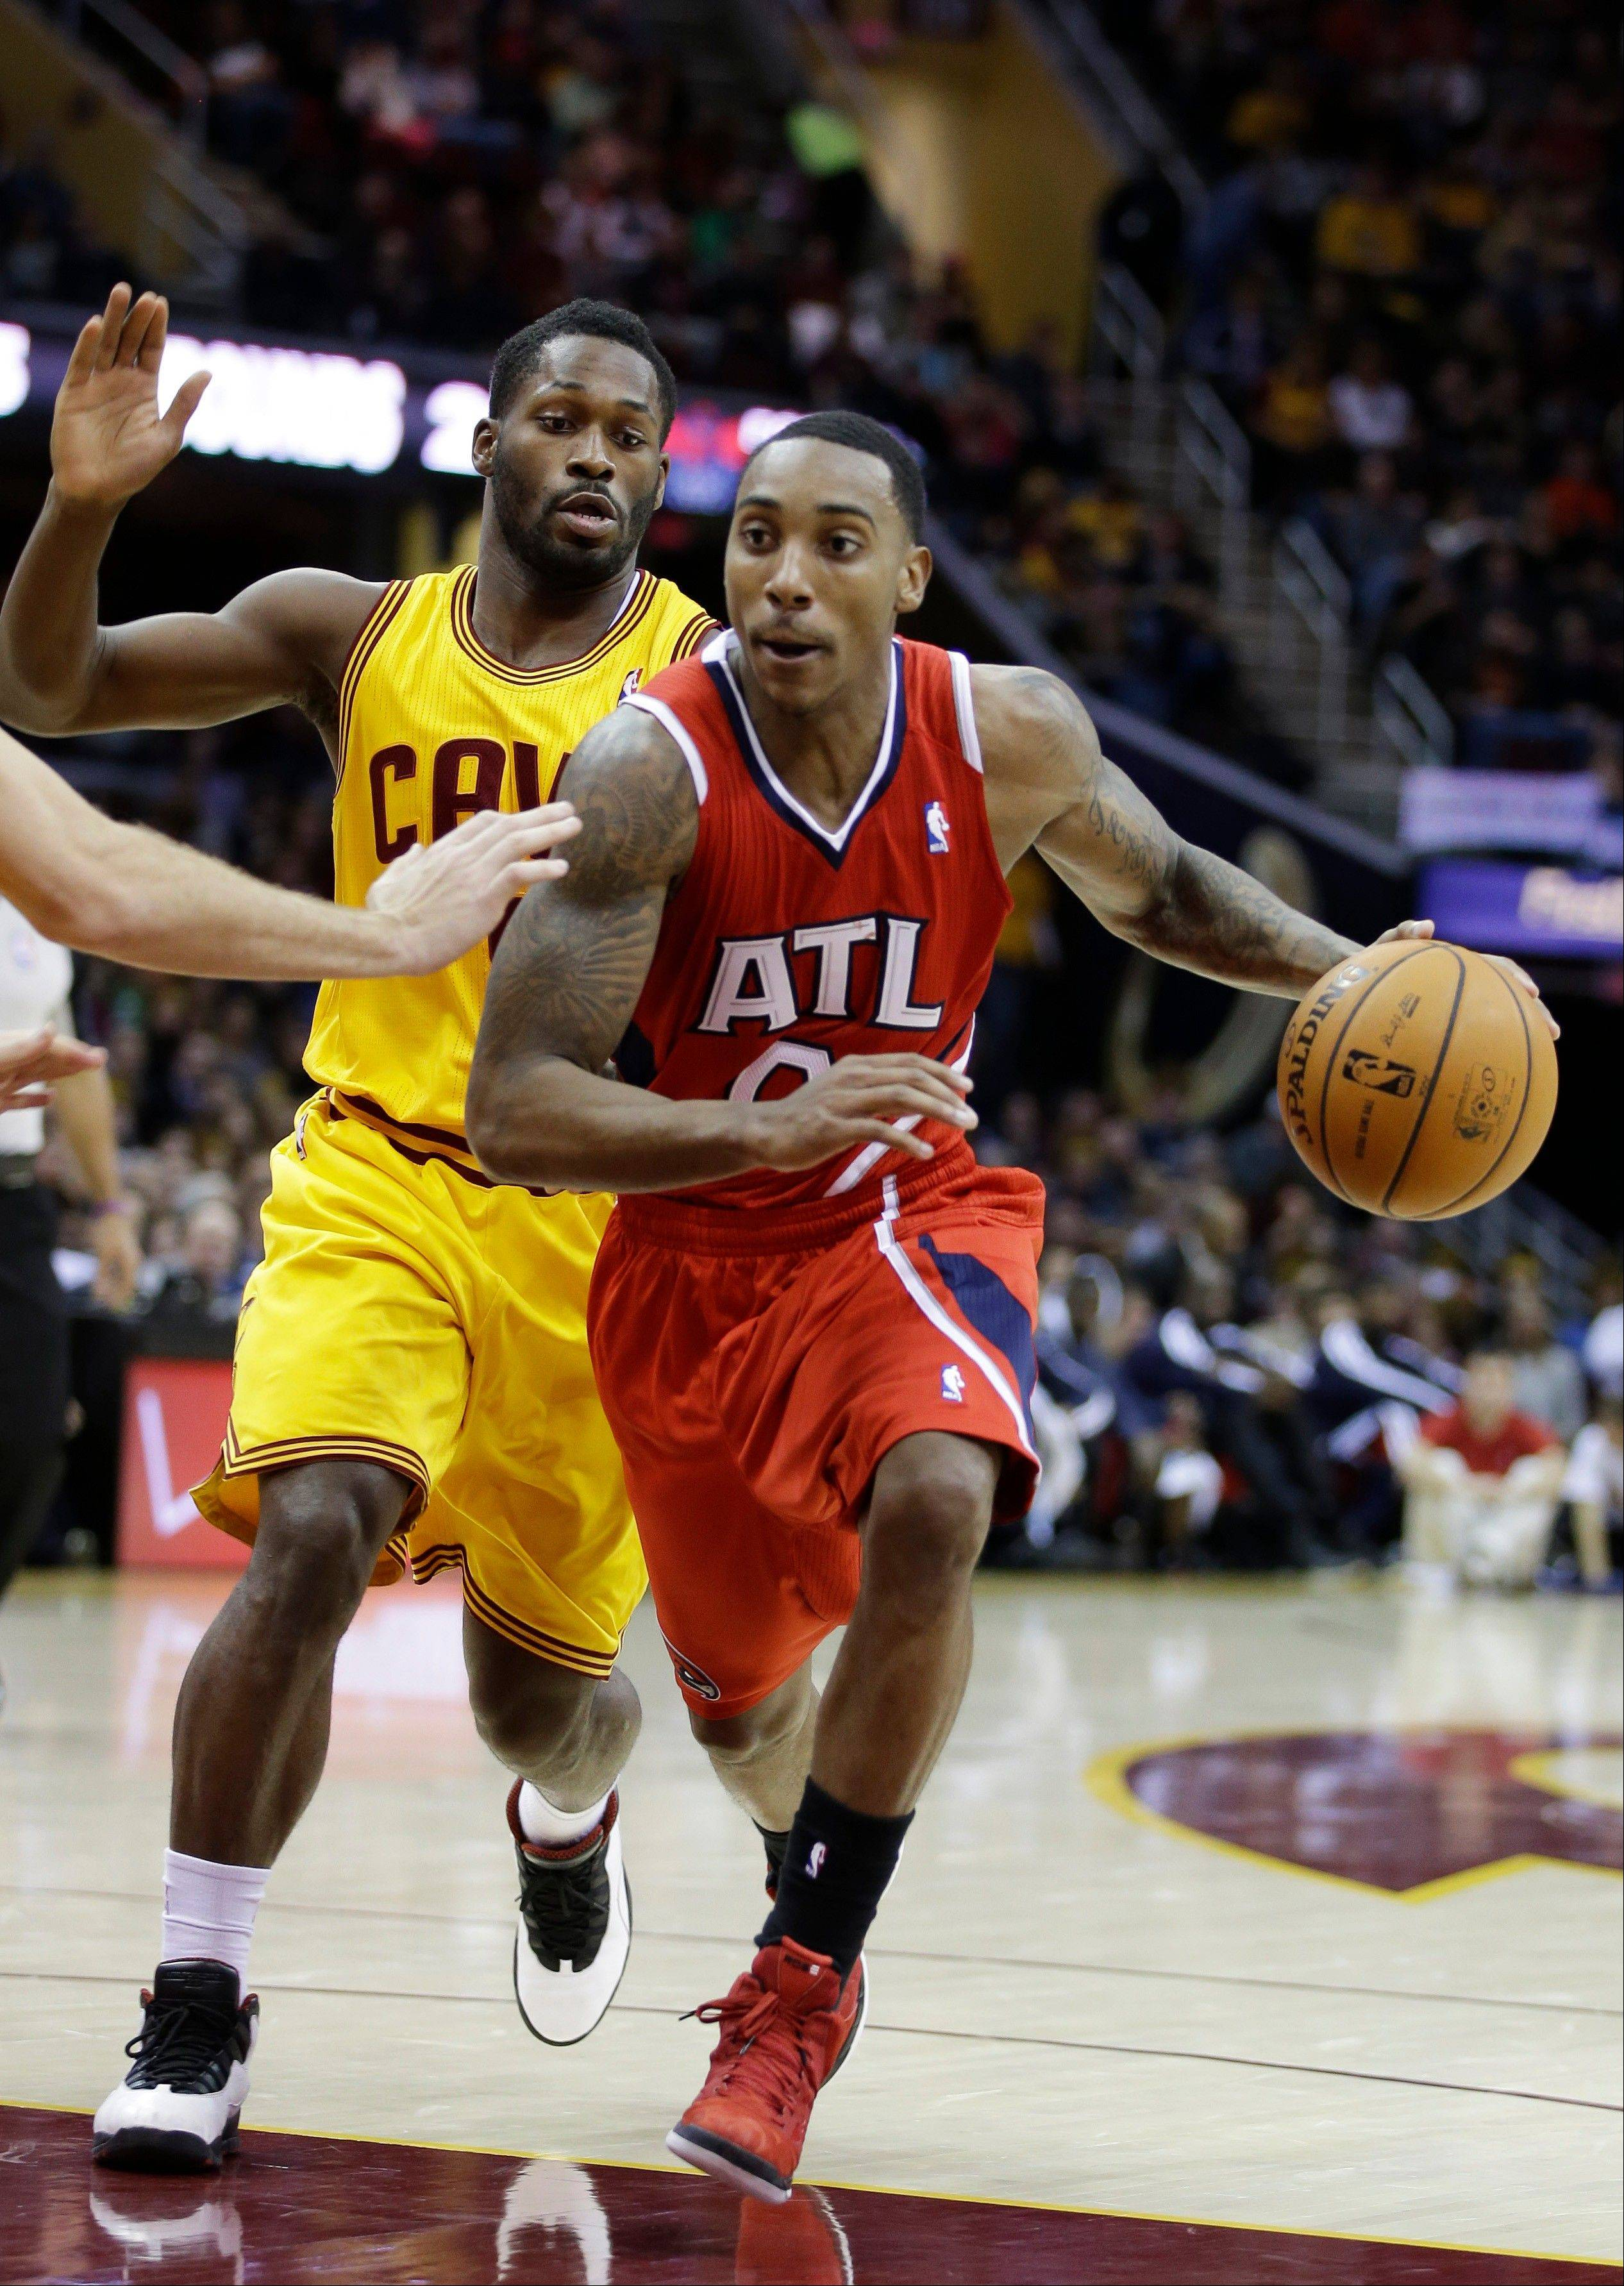 Atlanta's Jeff Teague drives past the Cavaliers' Jeremy Pargo in the third quarter Friday in Cleveland. Teague led the Hawks with 27 points in a 102-94 win over the Cavaliers.